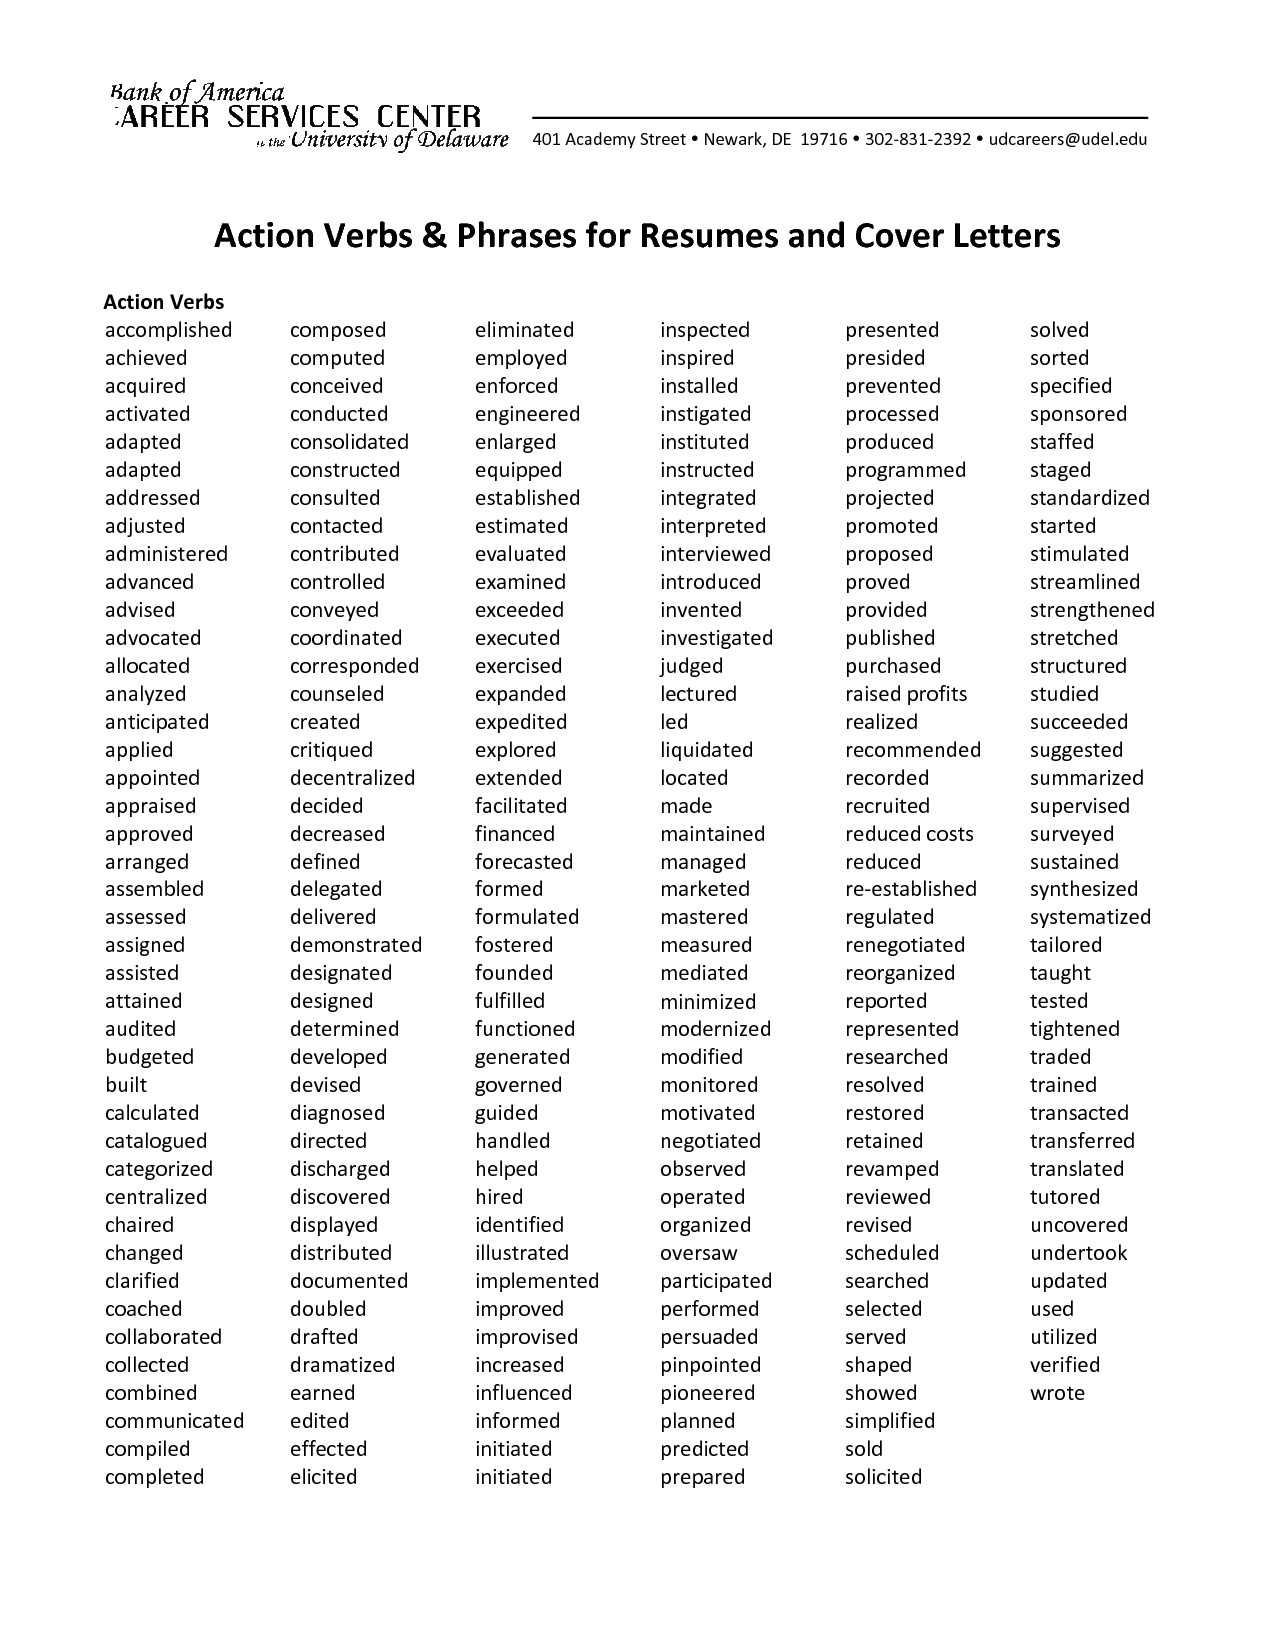 resume Good Adjectives For A Resume action verbs phrases for resumes and cover letters things i like letters